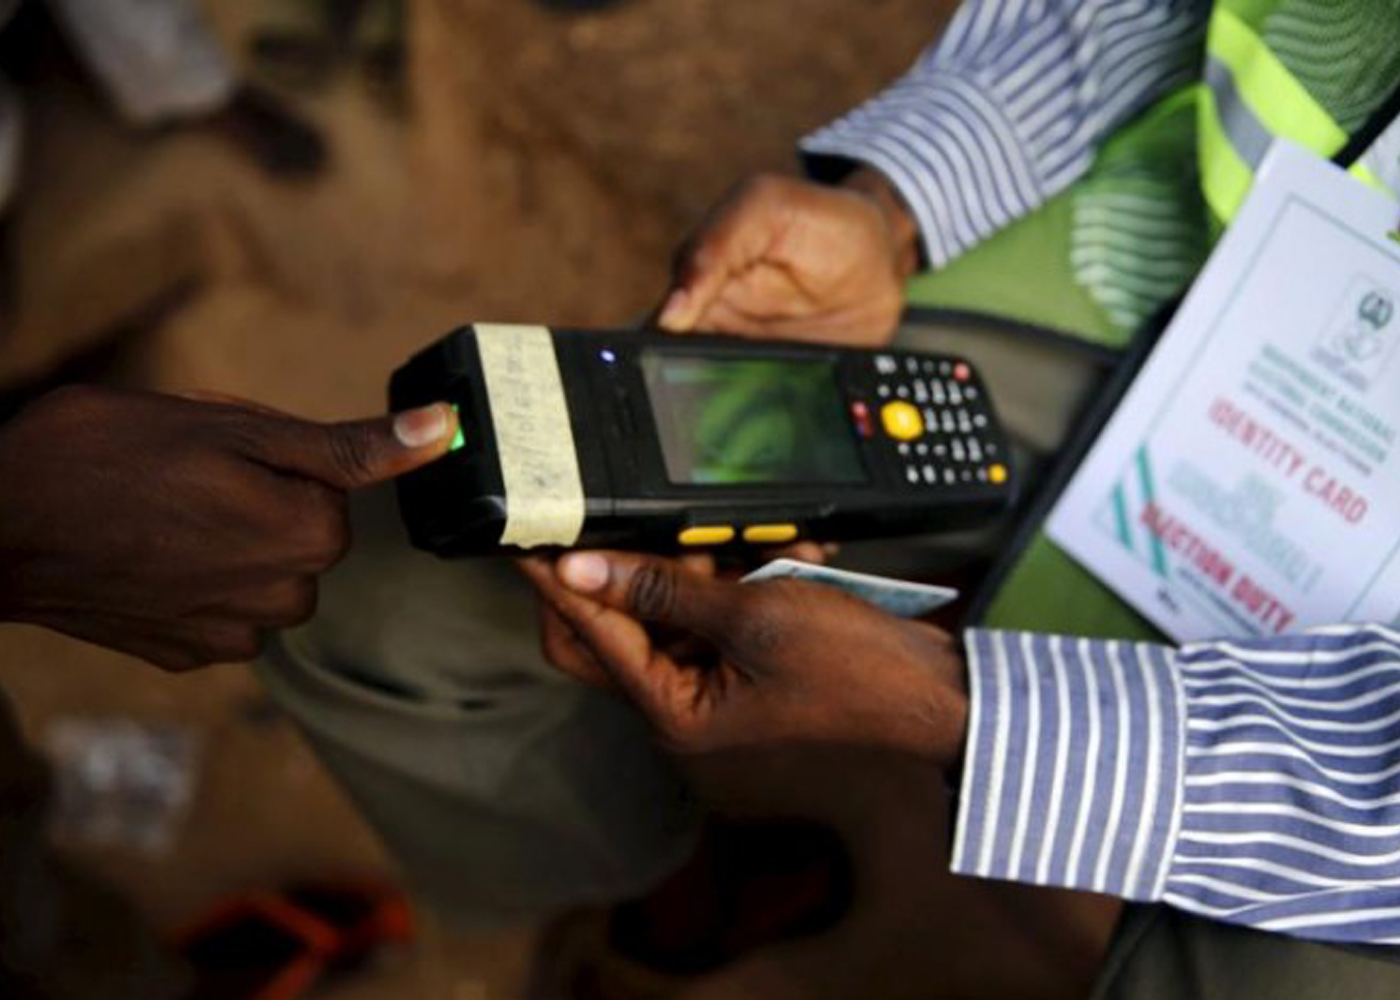 #AnambraVotes: Card readers fail in many polling units